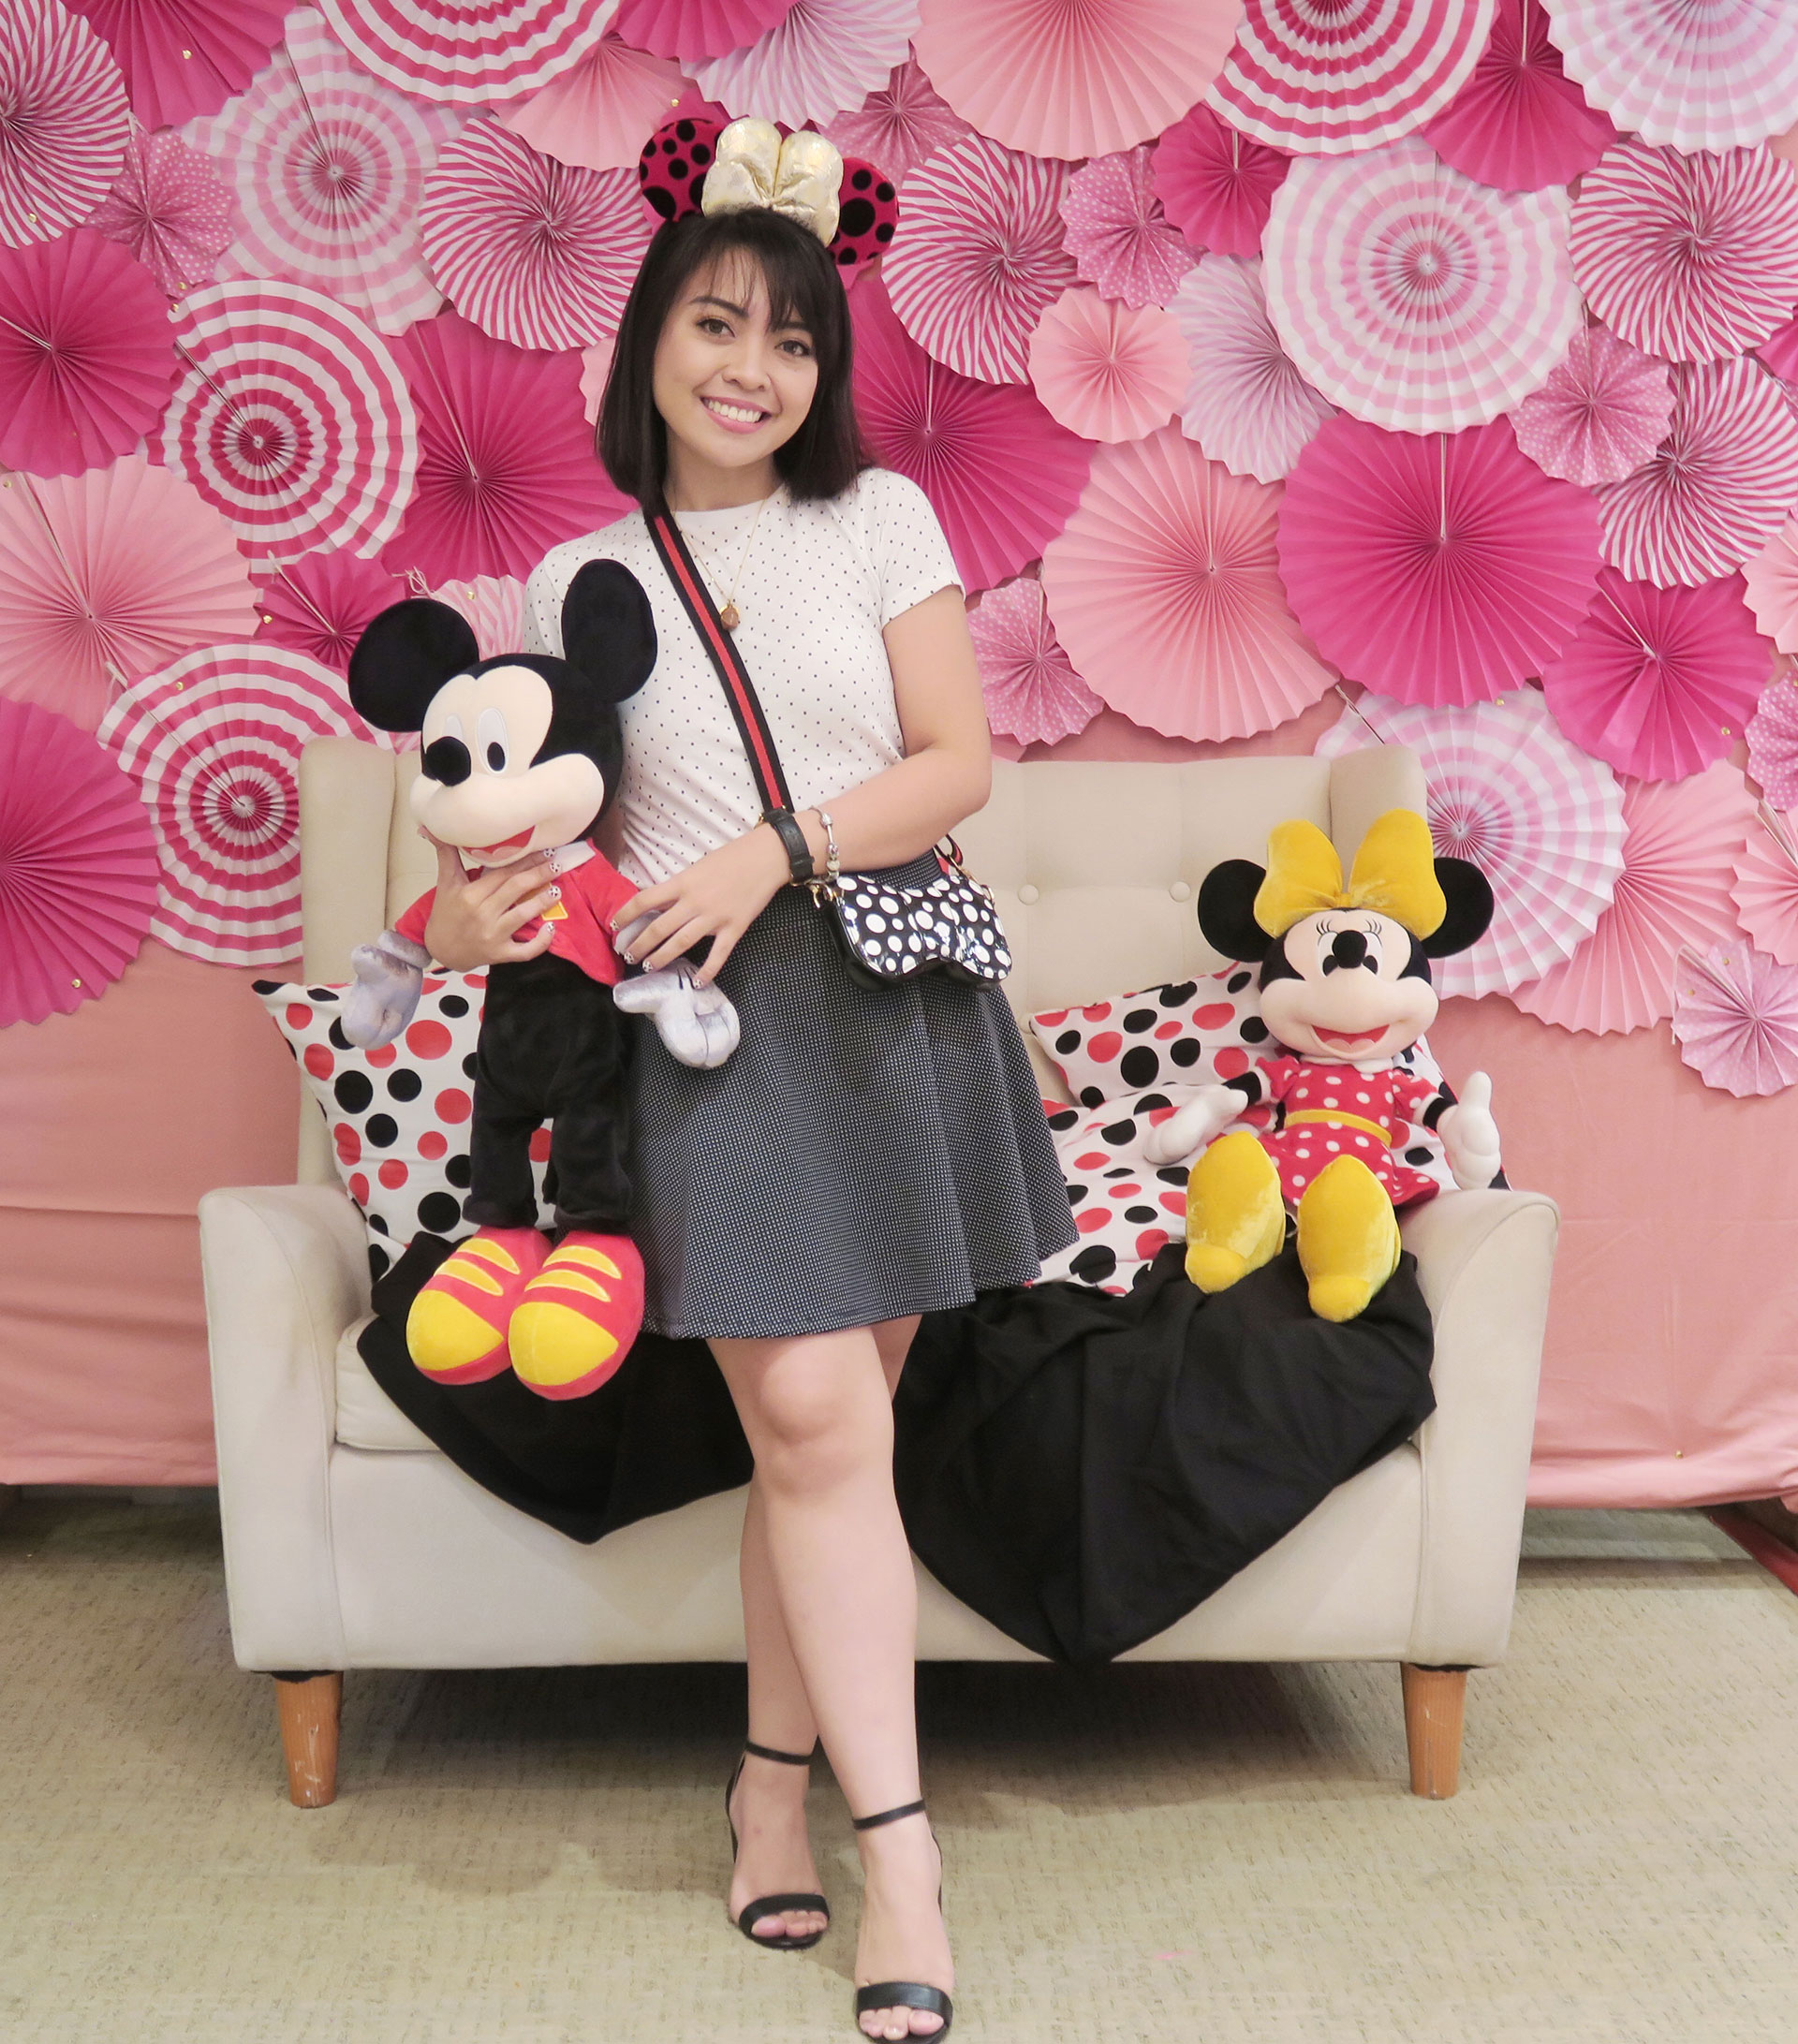 16 Girlstuff Minnie Mouse Nail Lacquers Collection Review Swatches Photos - Gen-zel She Sings Beauty